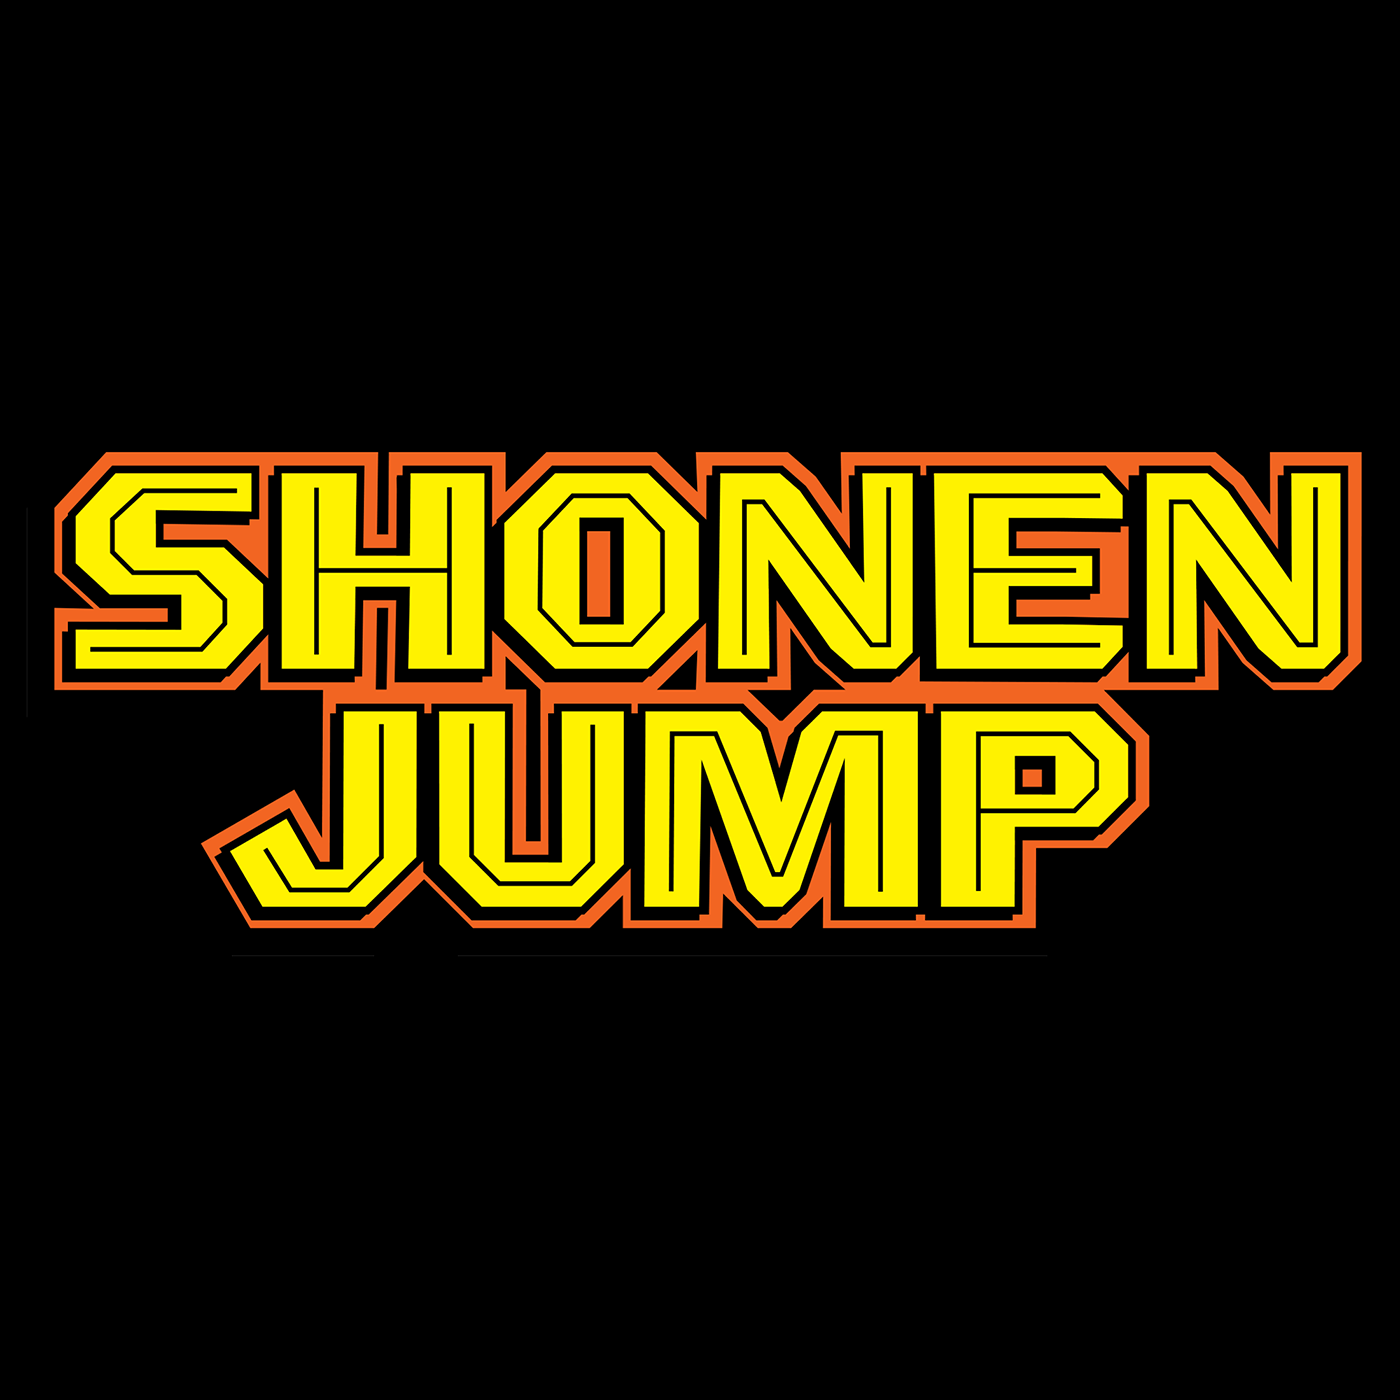 Weekly Shonen Jump Podcast